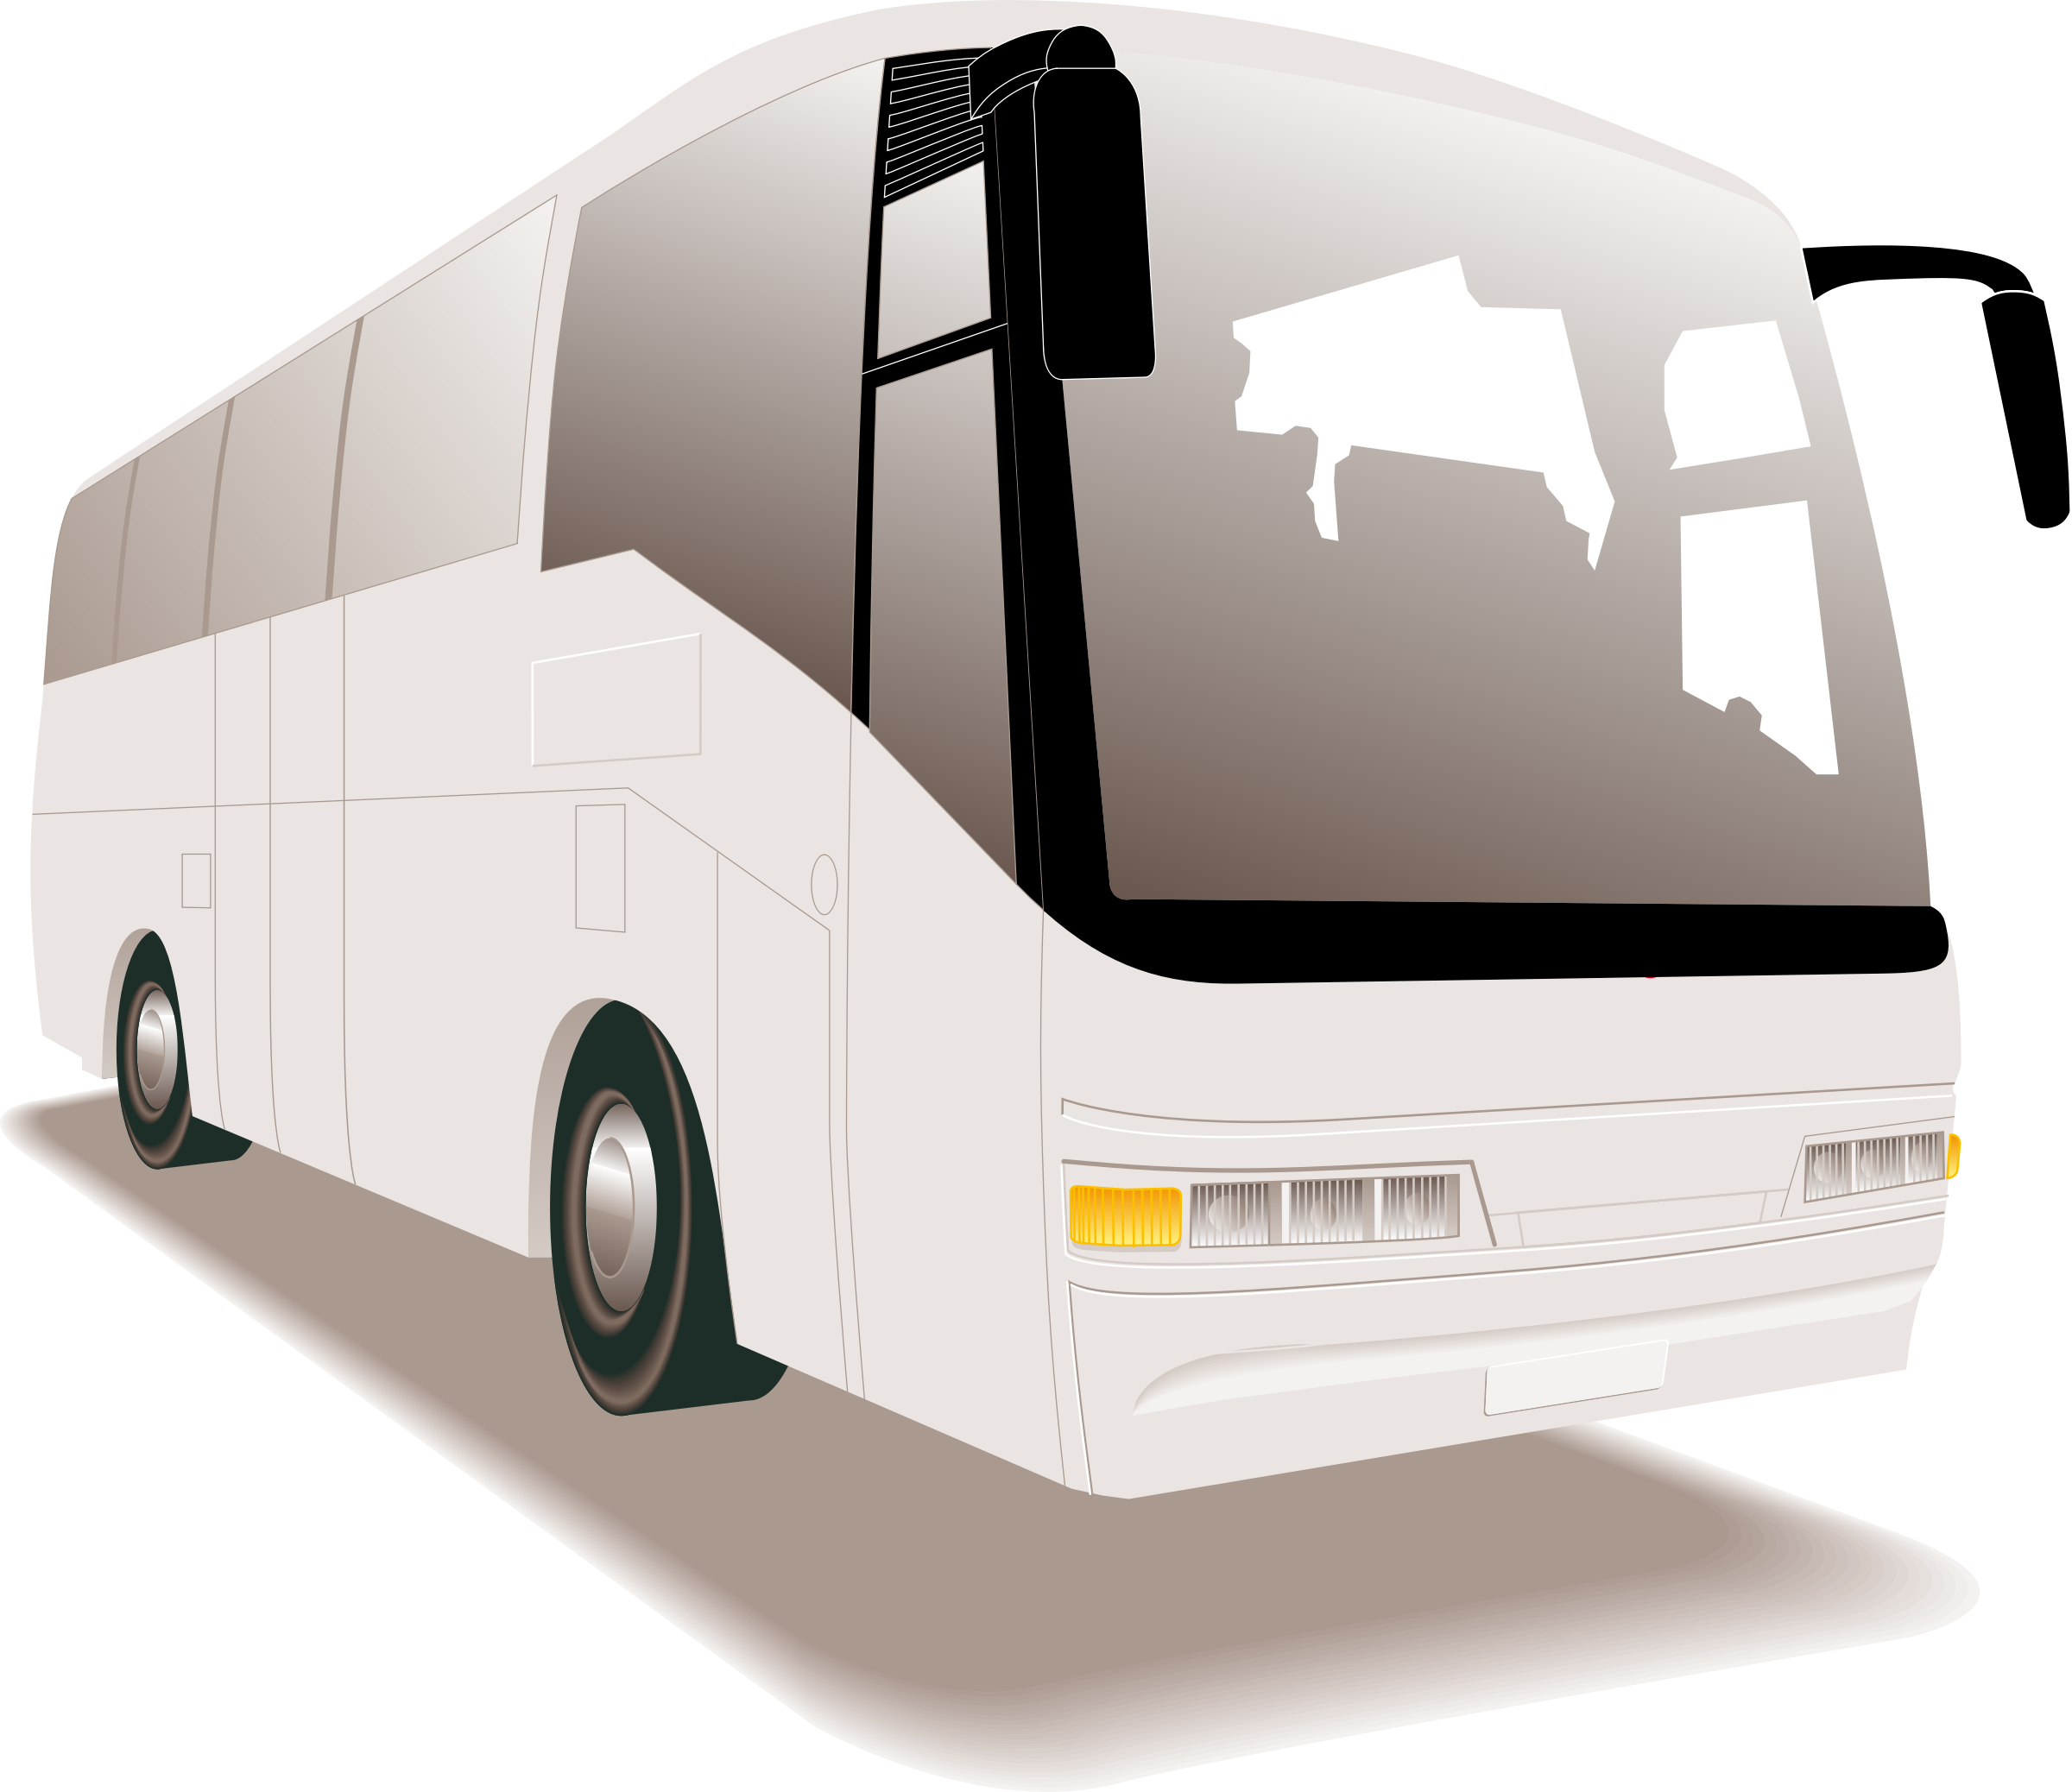 Touring bus clipart #11